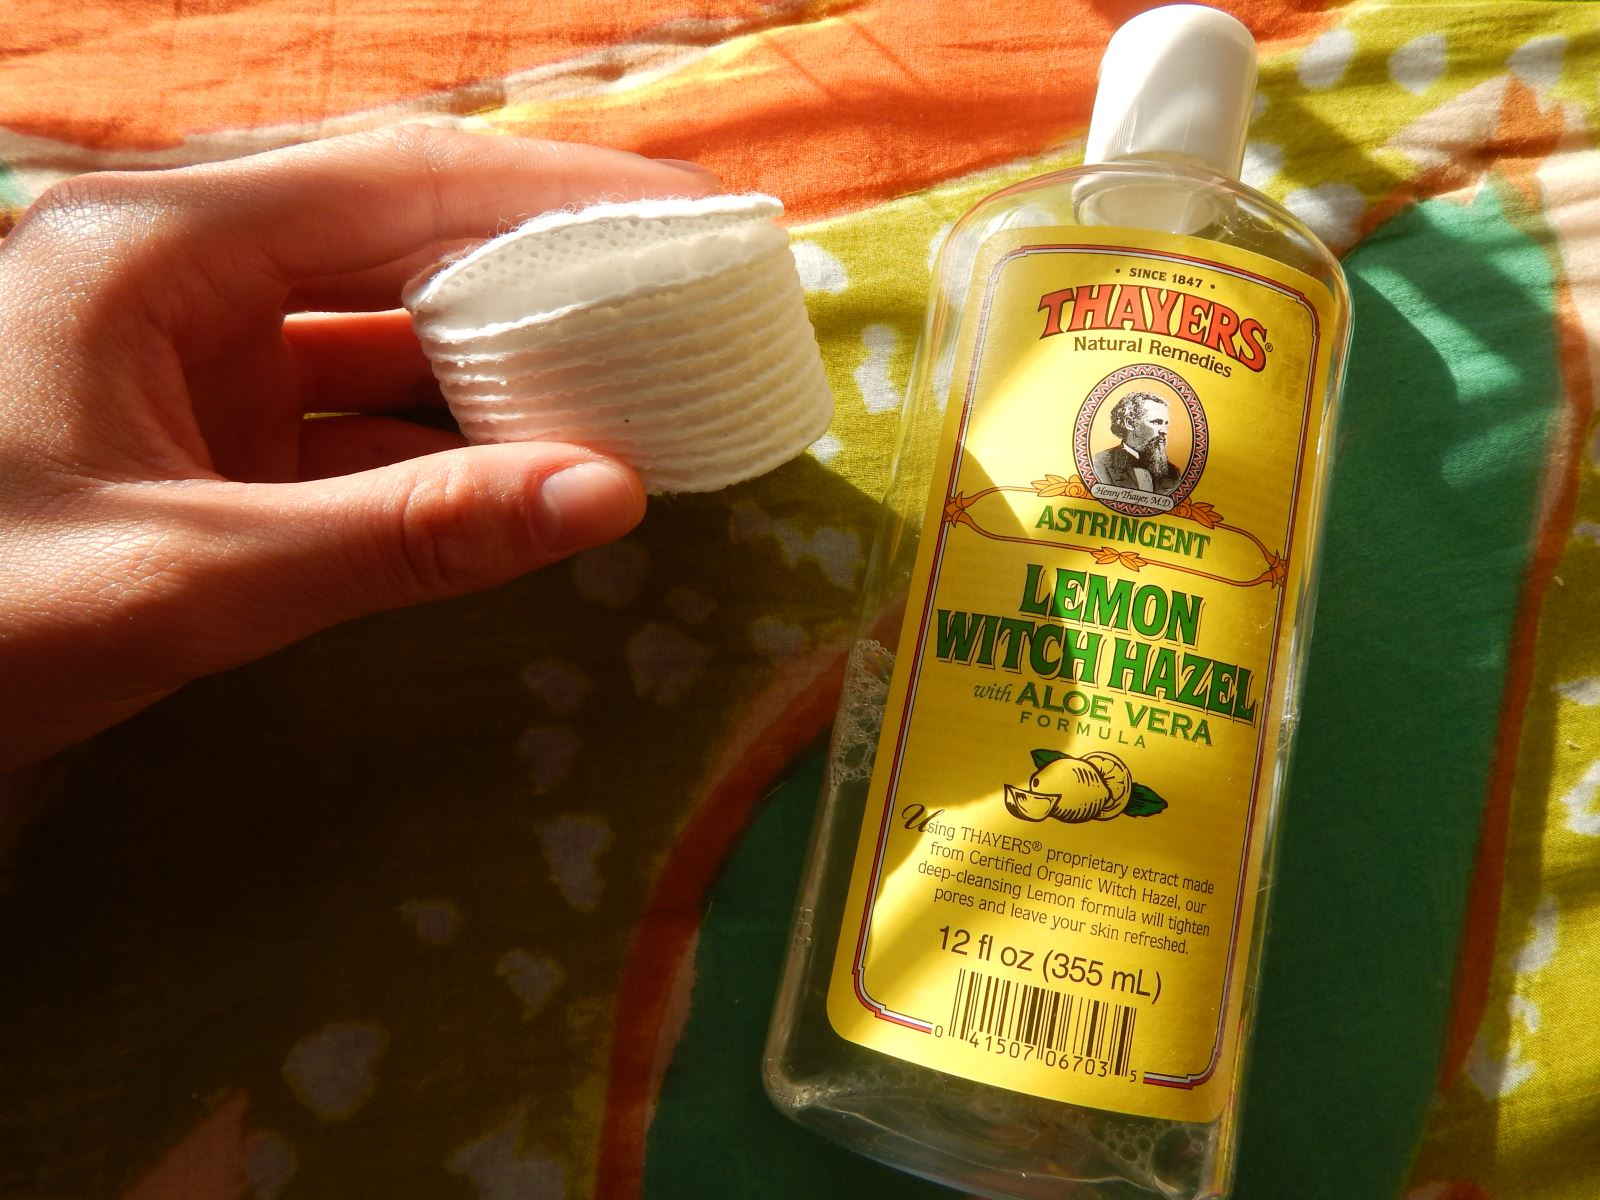 [Thayers] Alcohol Free Toner, Lemon Witch Hazel with Aloe Vera Formula